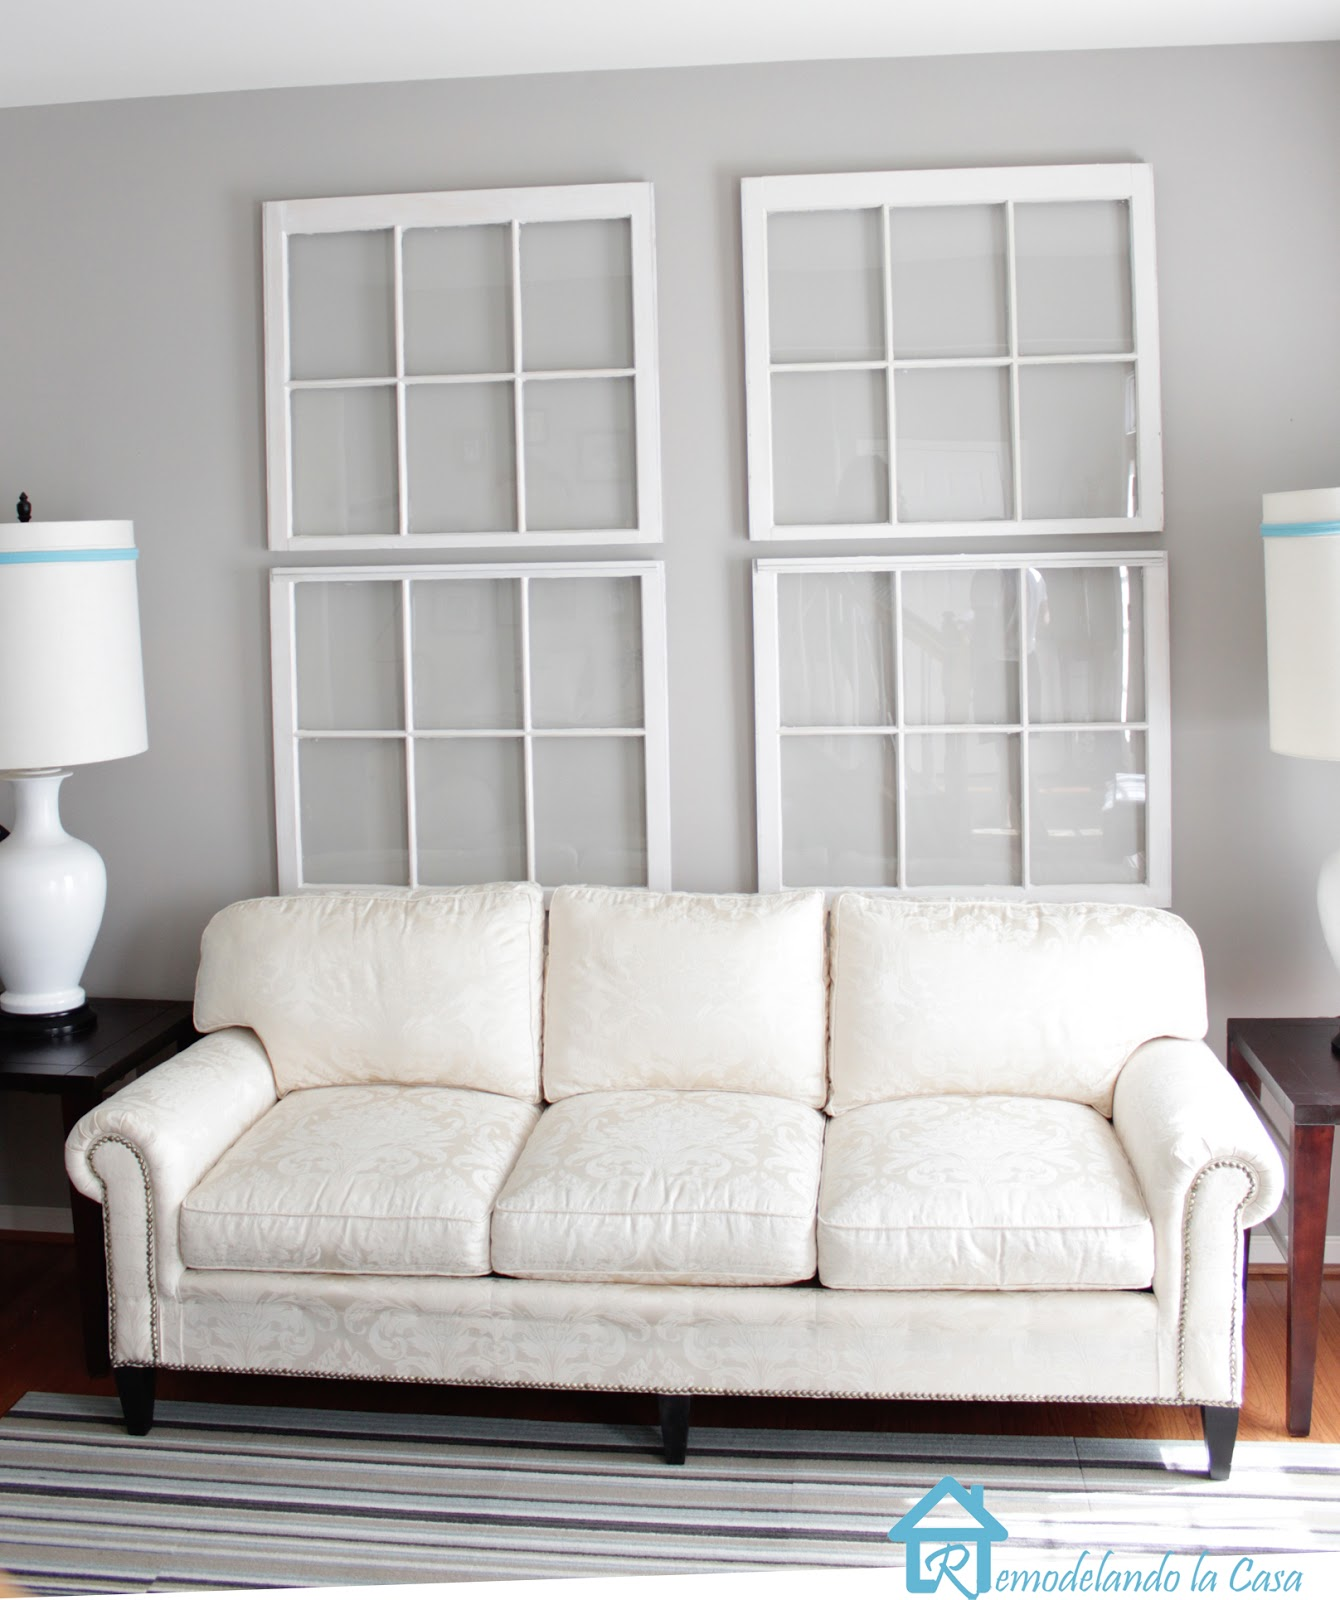 Decorating with Old Windows - Remodelando la Casa